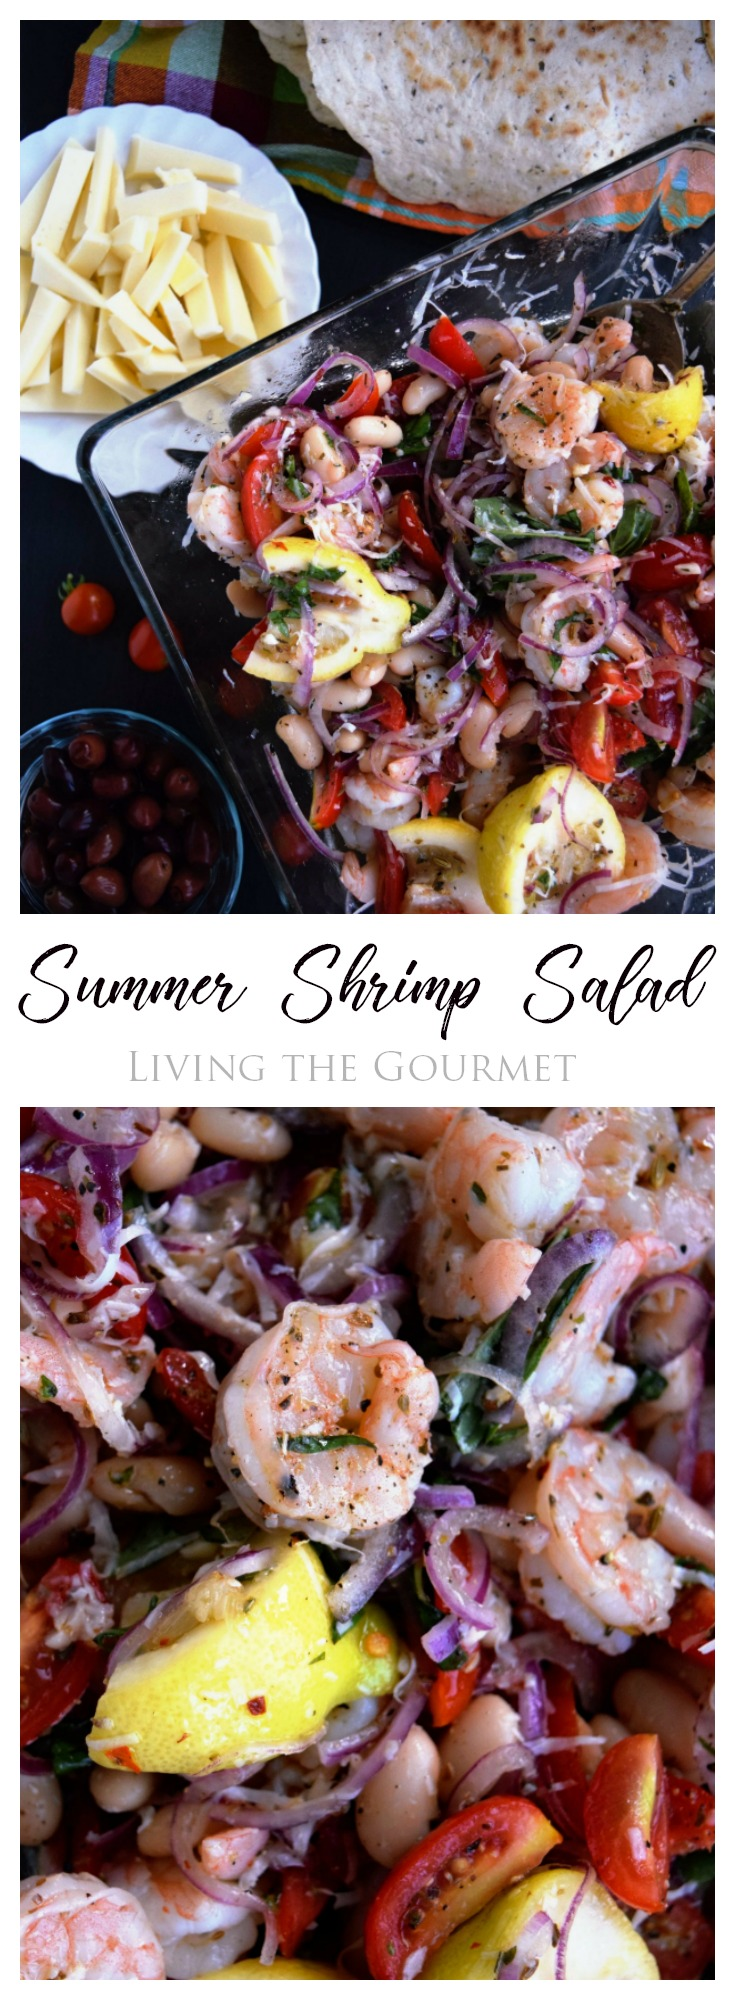 Living the Gourmet: This Summer Shrimp Salad is a cool, refreshing recipe for those hot summer nights that call for something easy!